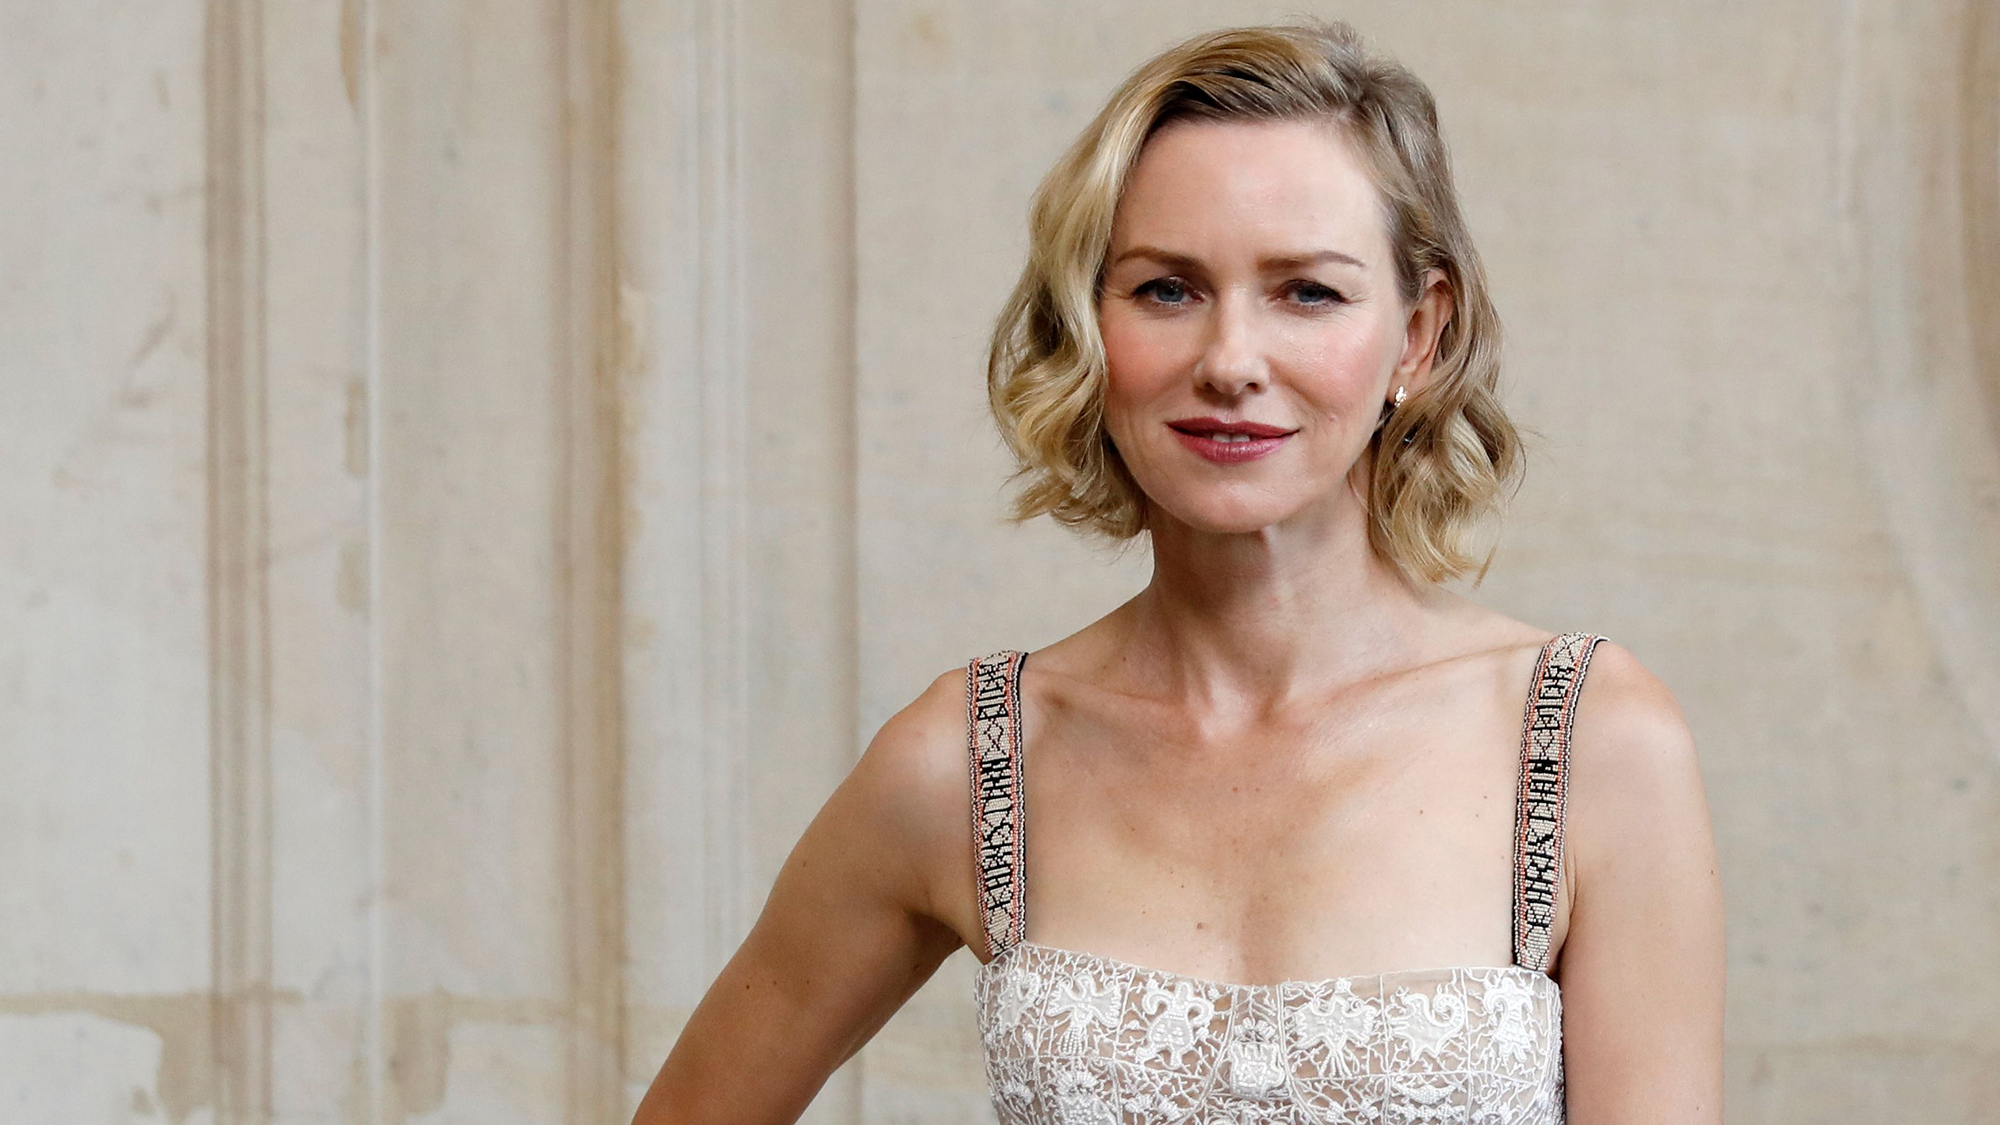 naomi watts cast as socialite in game of thrones prequel